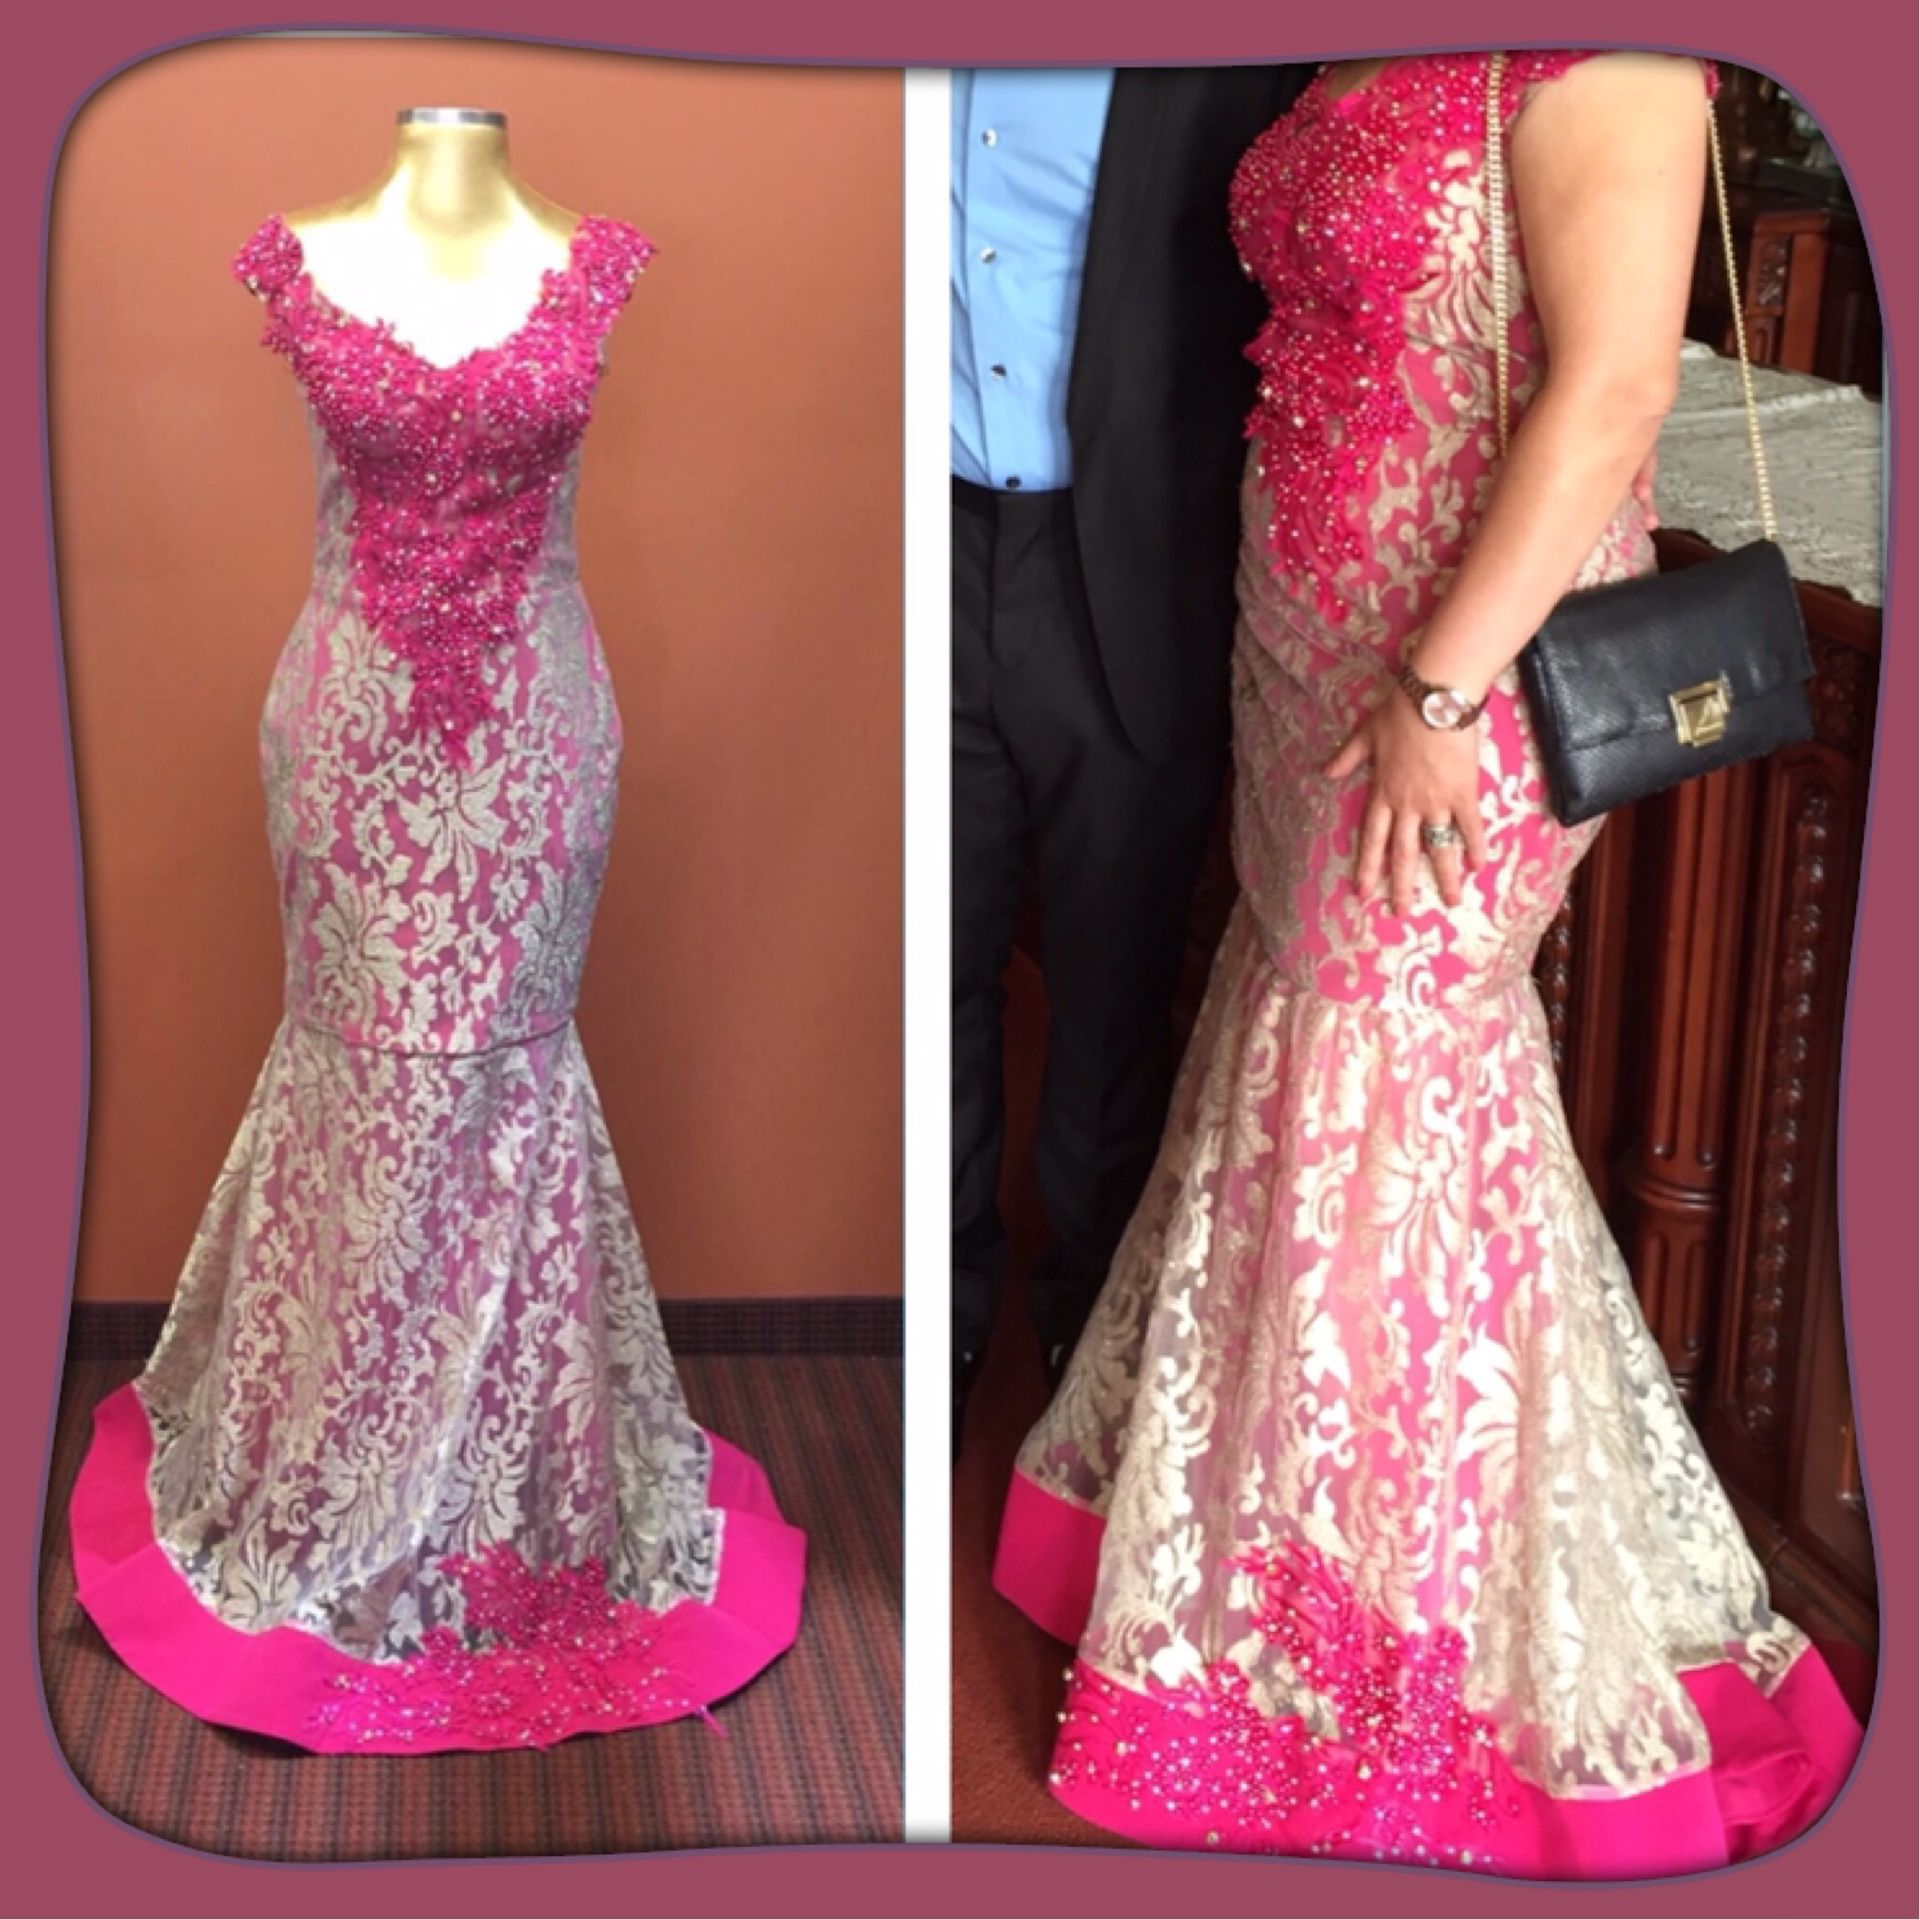 For sale size 8 - 10